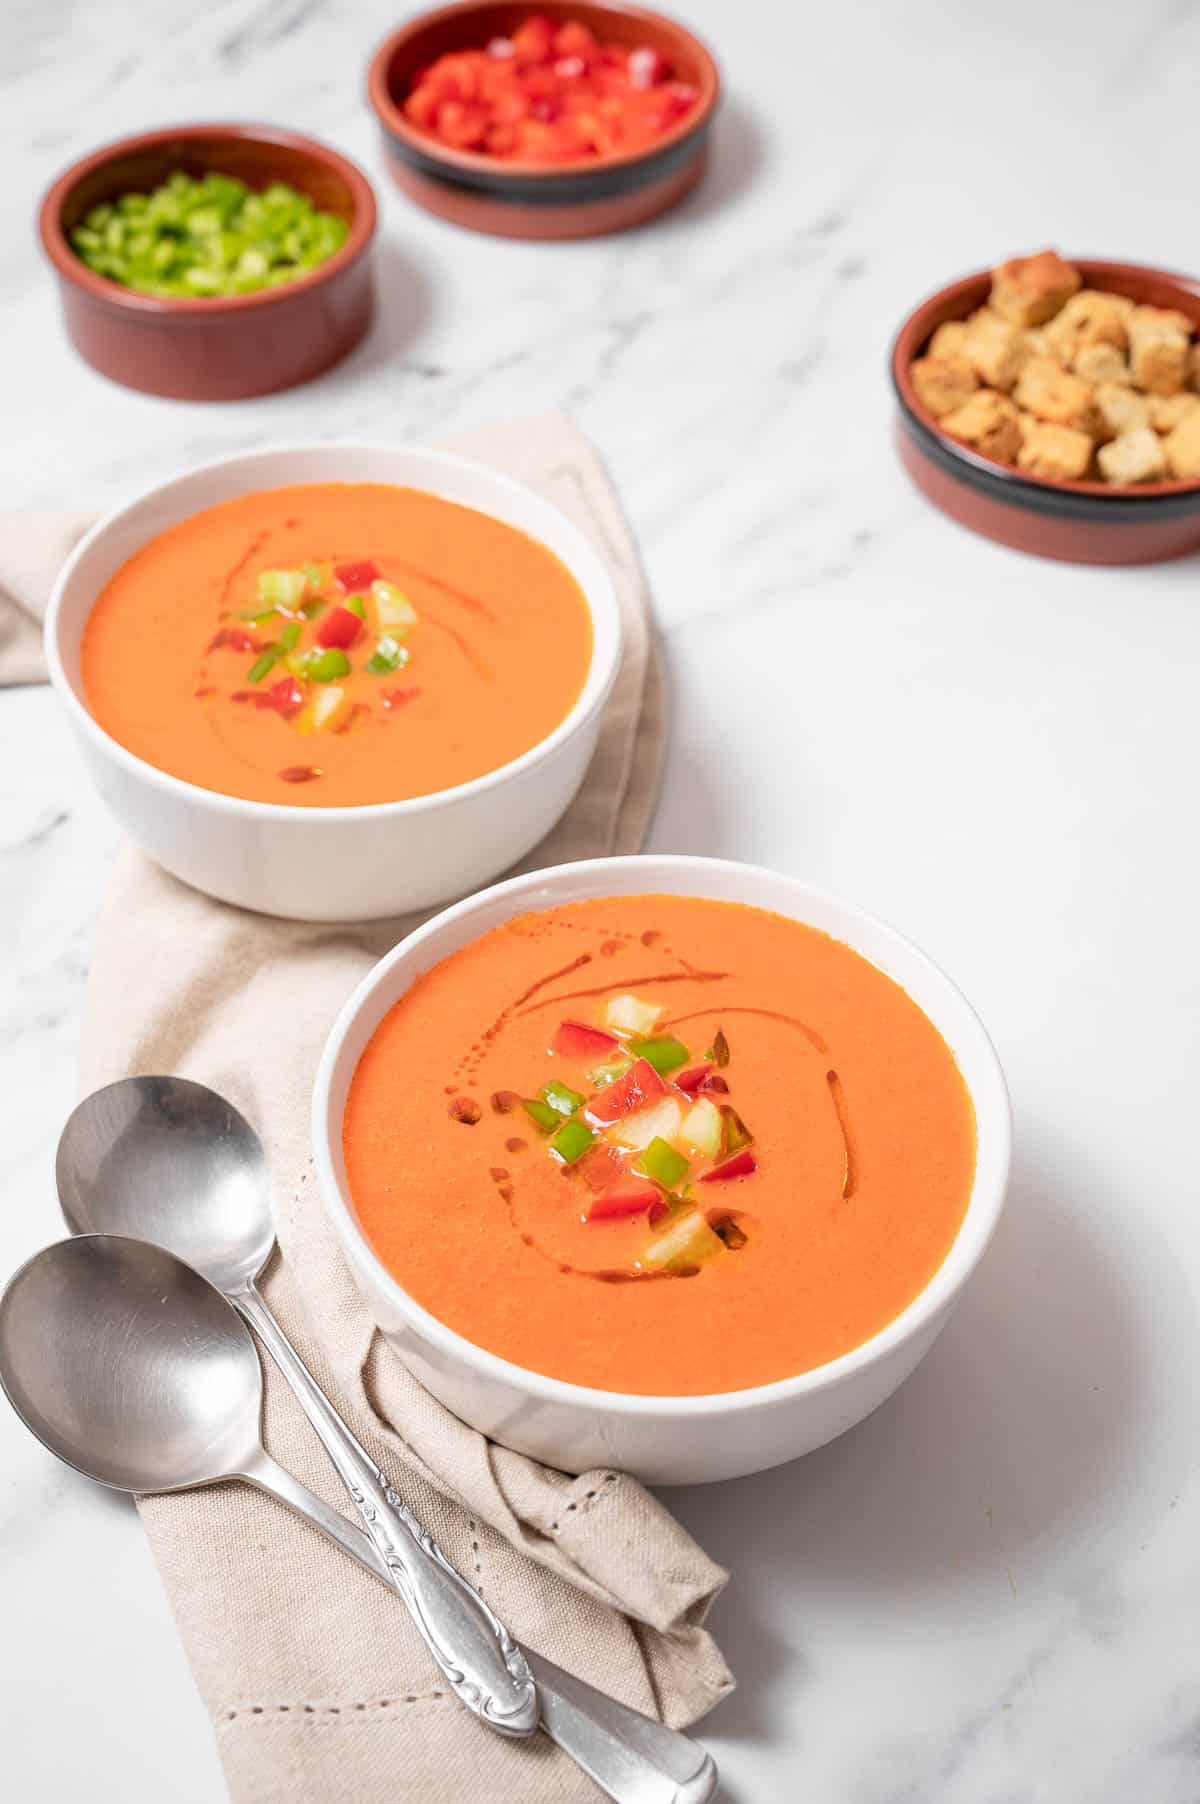 Two bowls of Spanish gazpacho with toppings. Diced pepper and croutons in clay bowls in the background.